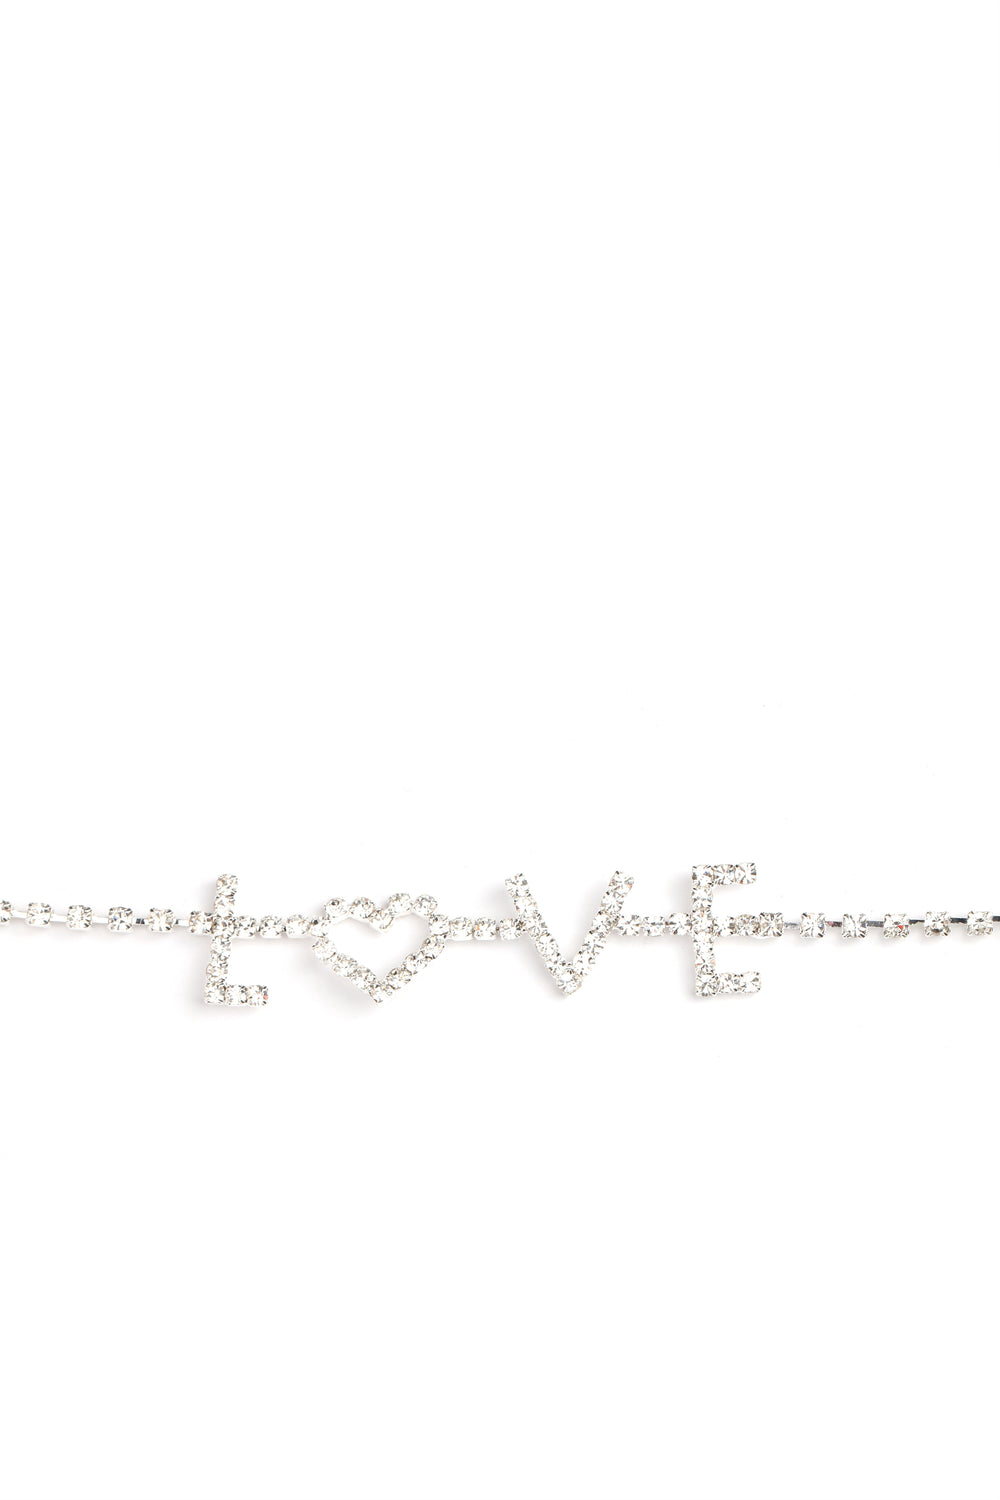 Don't You Just Love Anklet - Silver